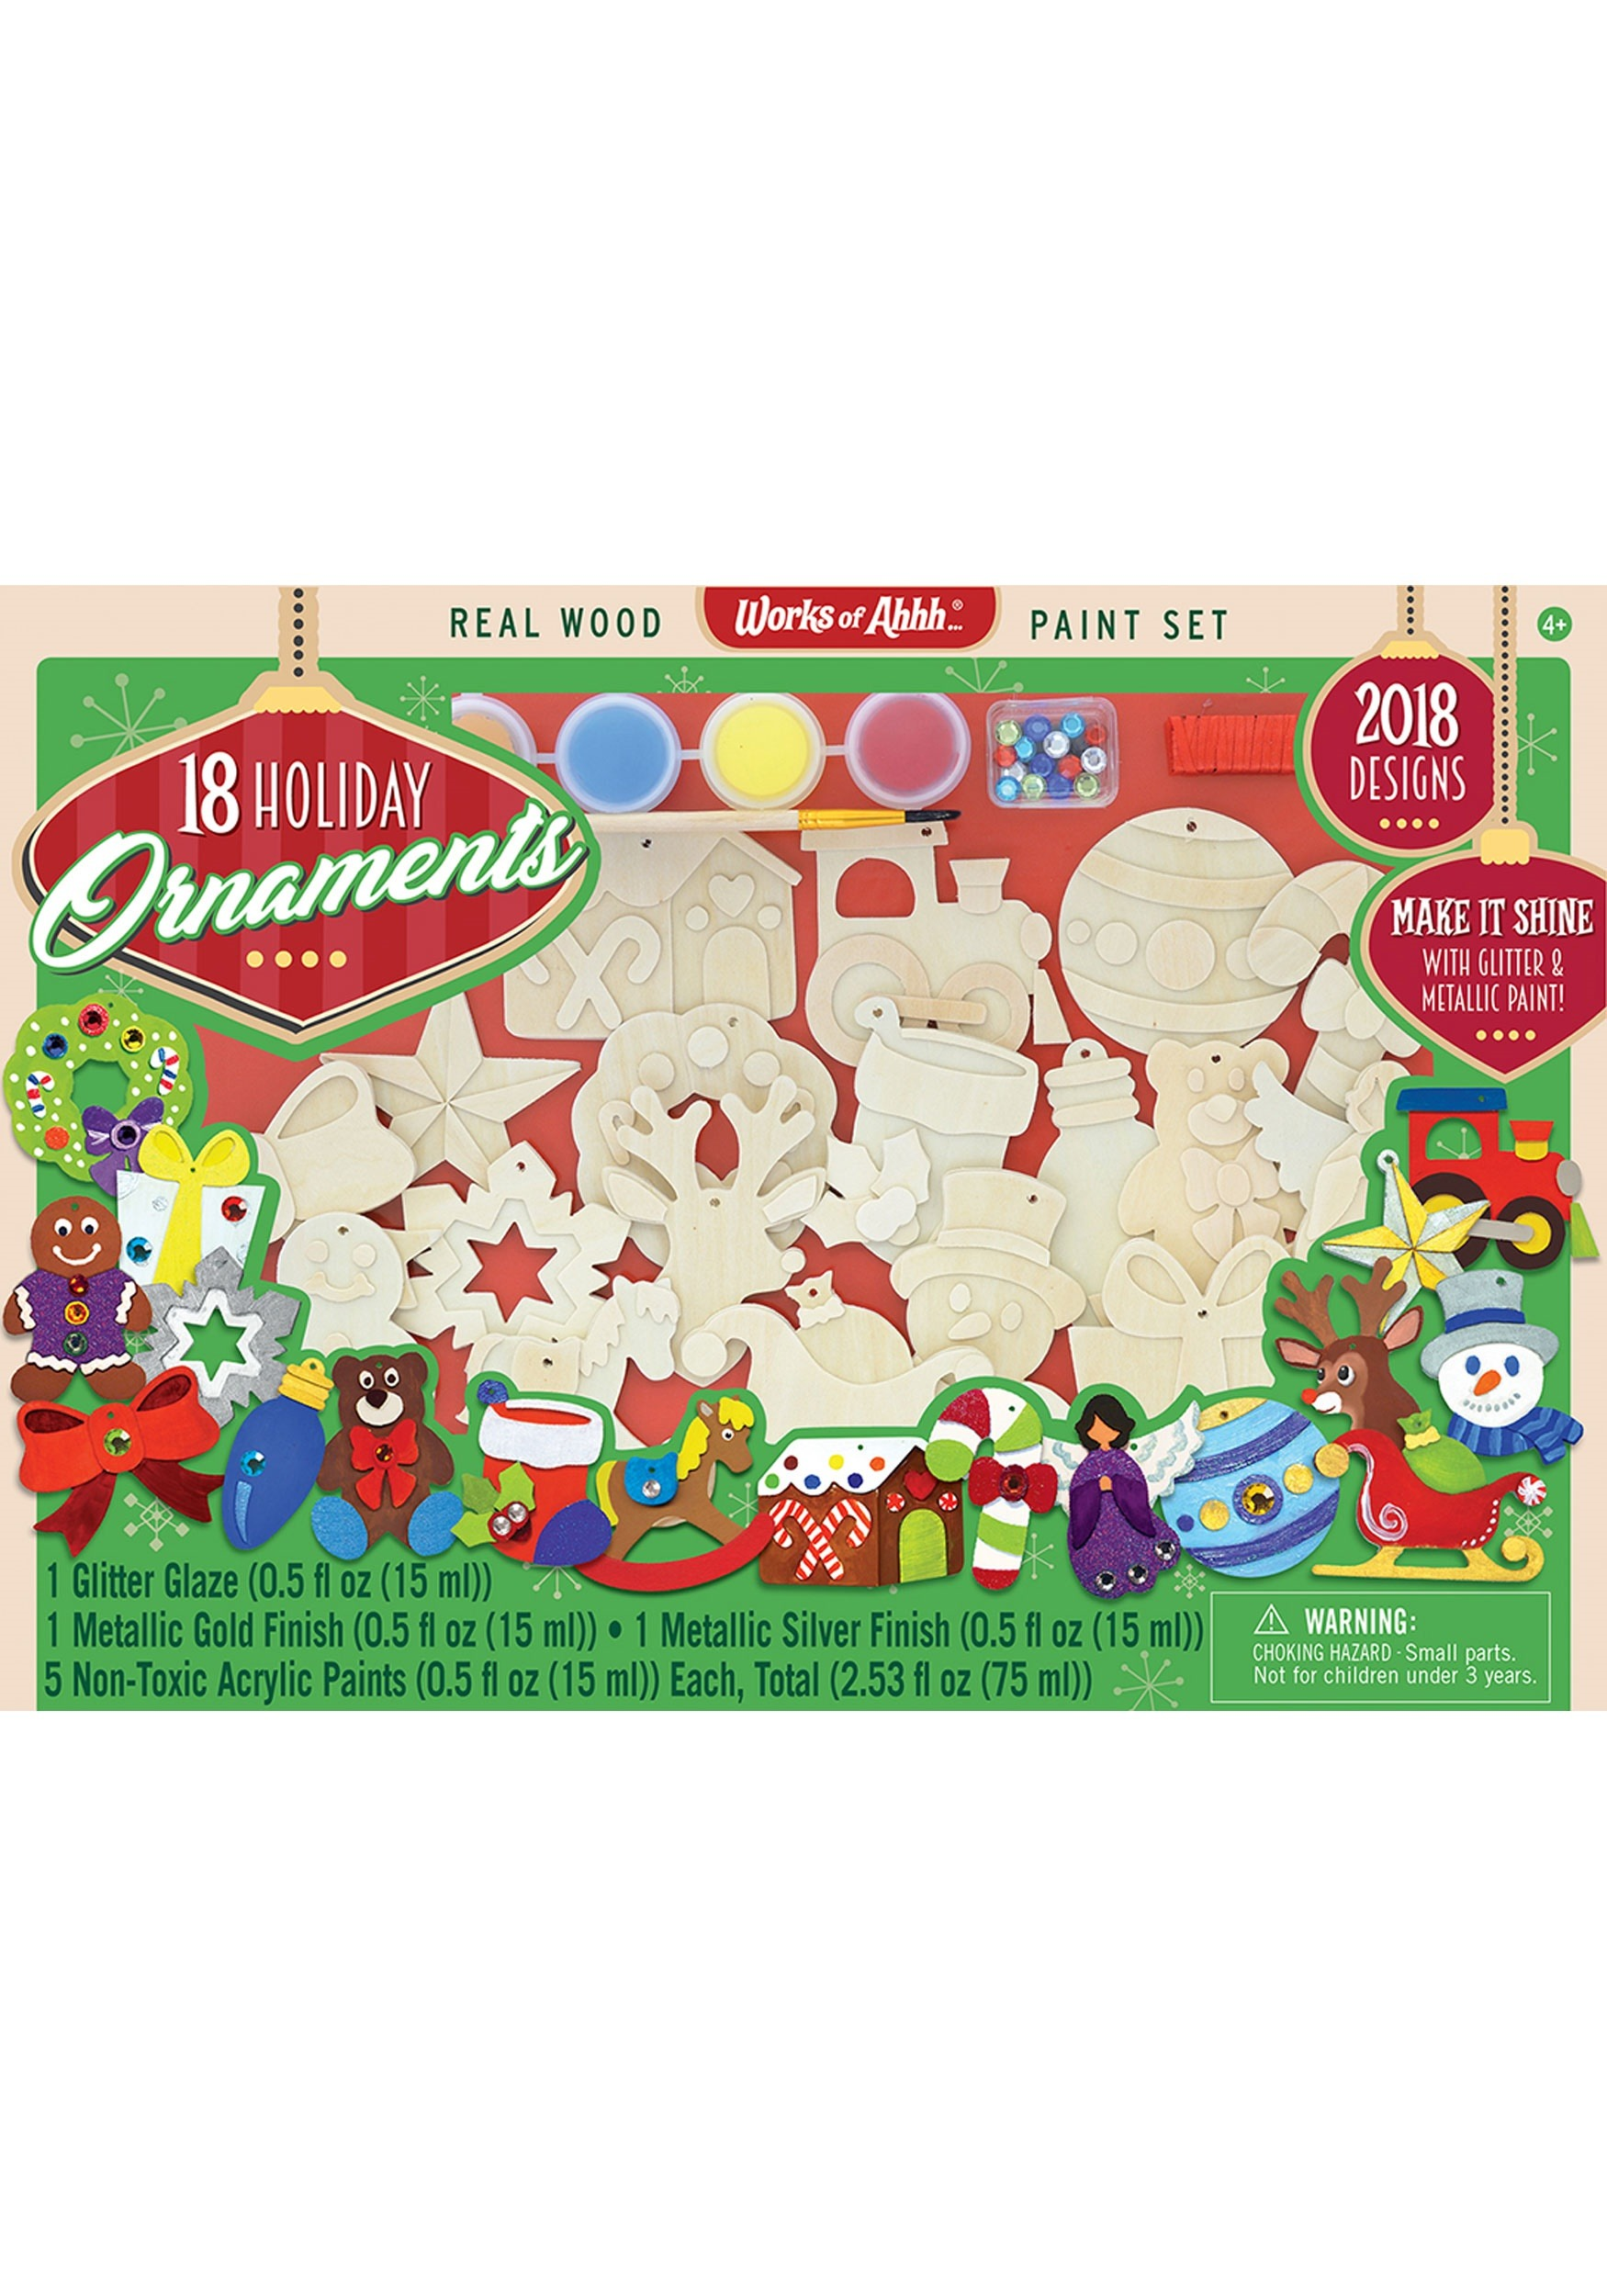 Works of Ahhh 18 Pack Christmas Ornaments Paint Set